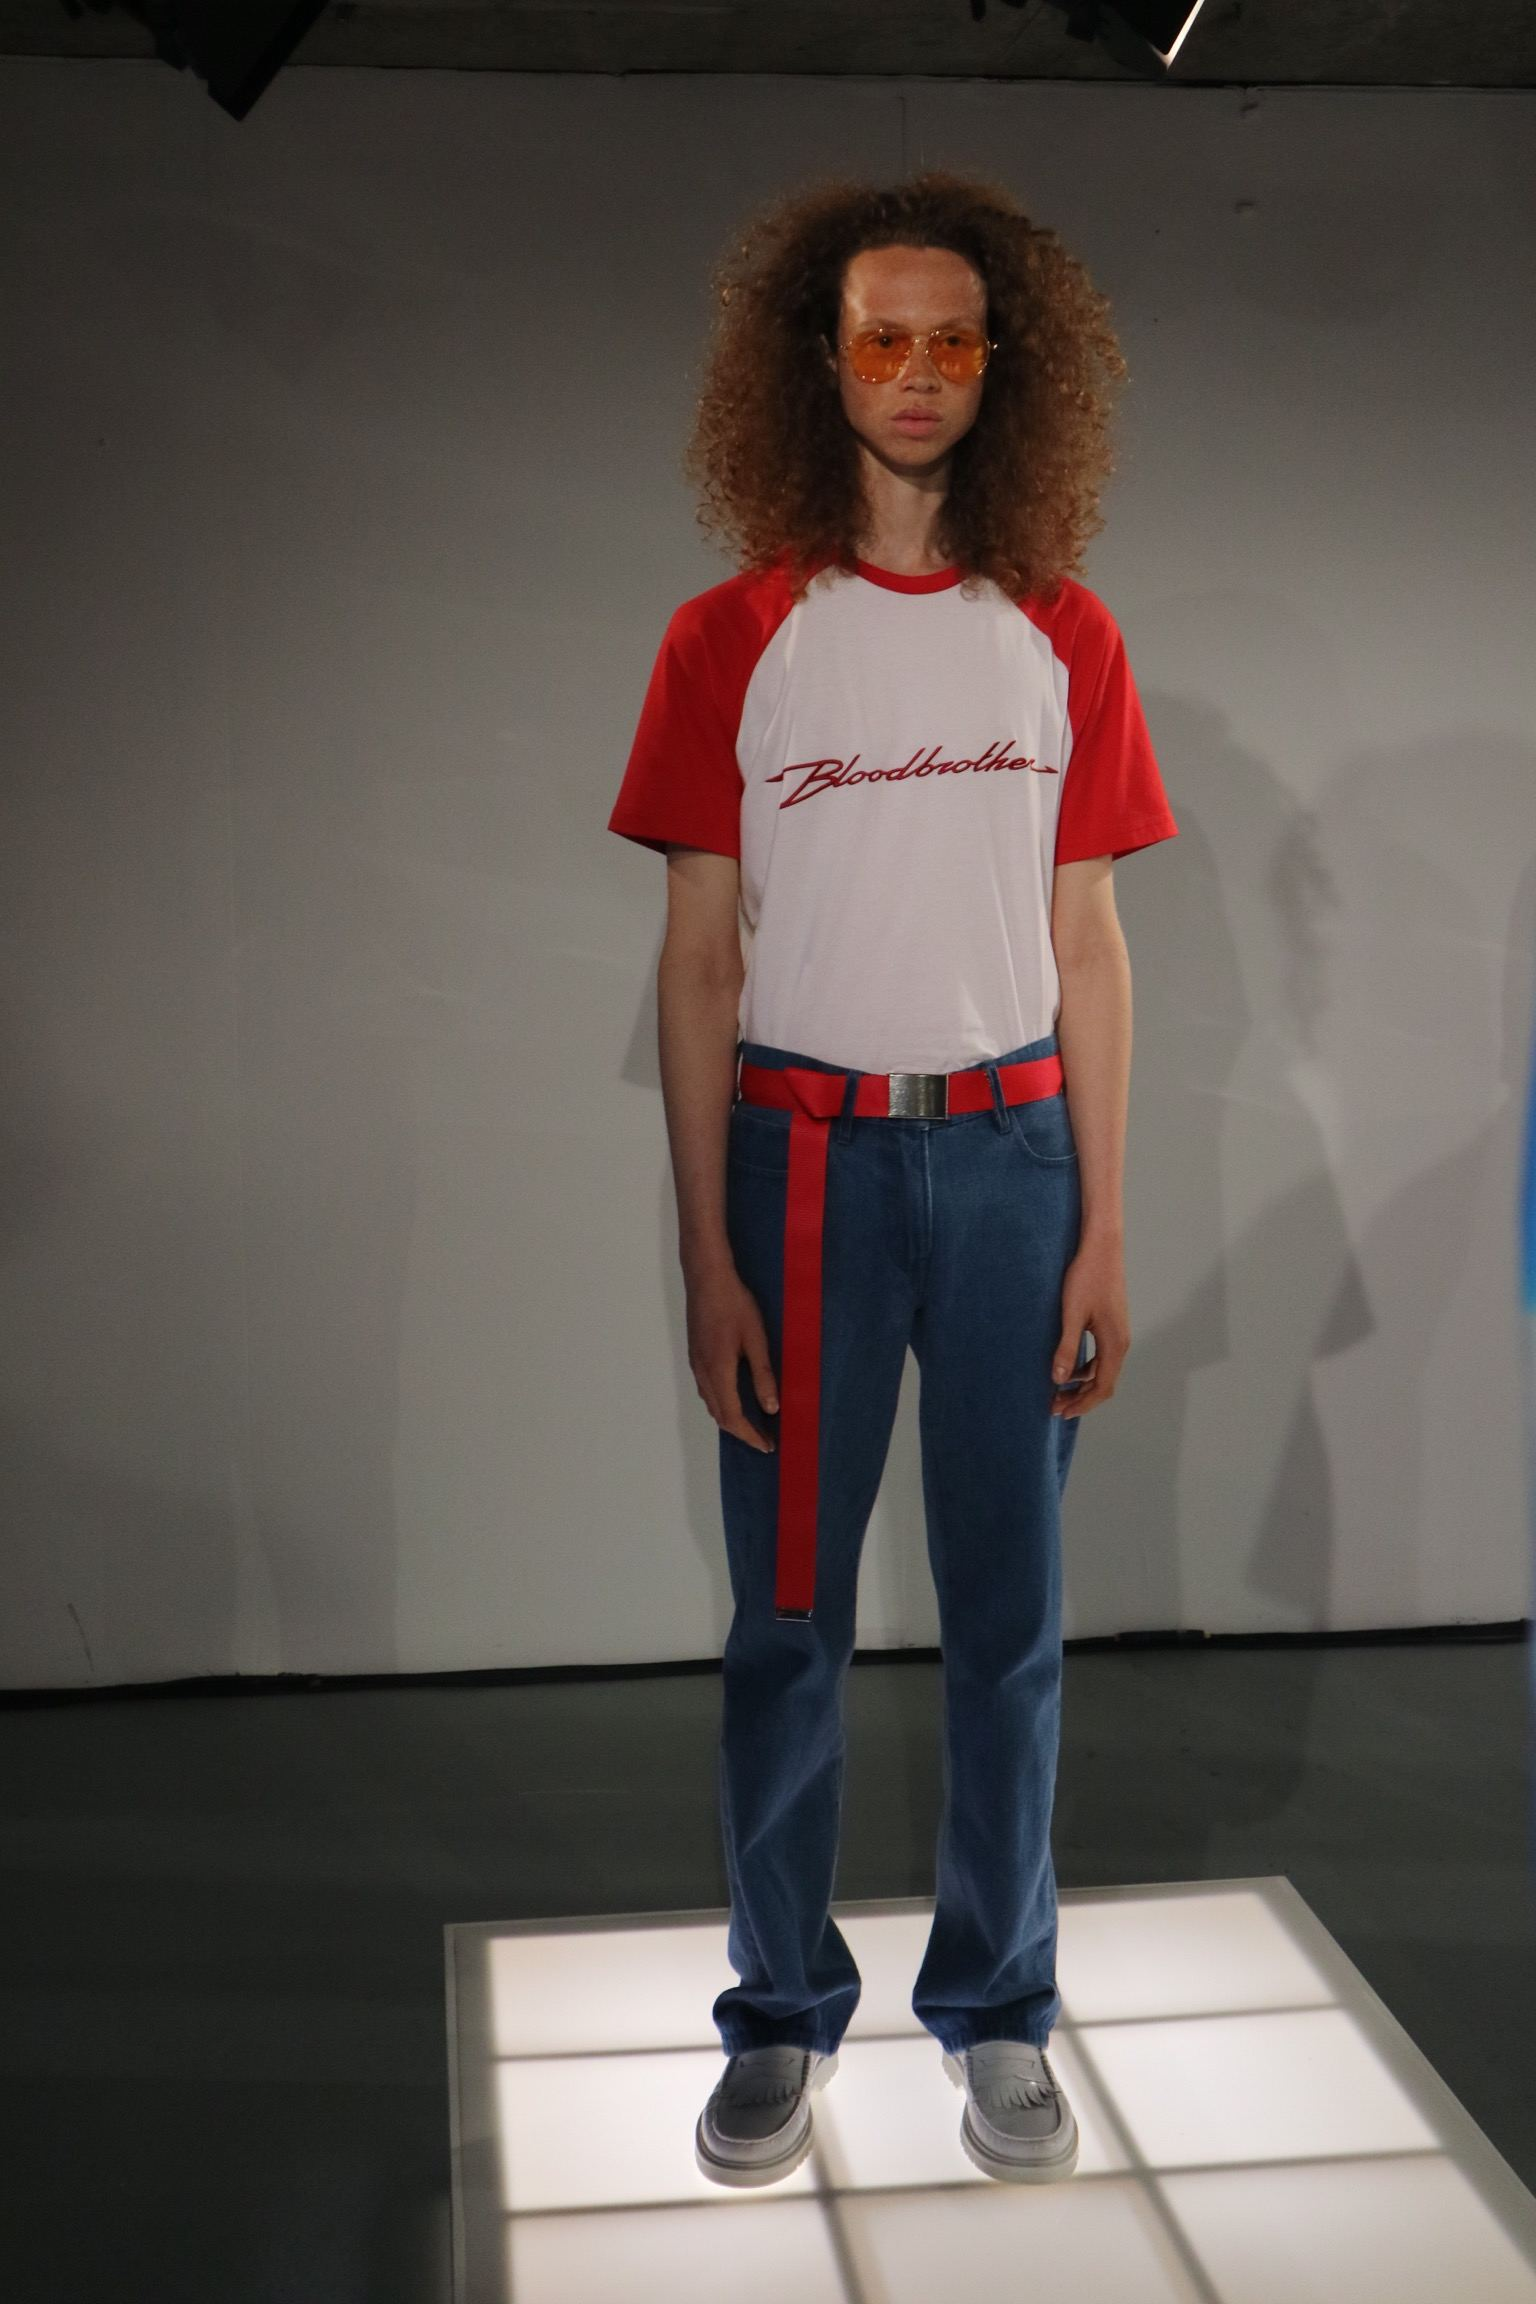 Blood brother ss18 London fashion week men's ss18